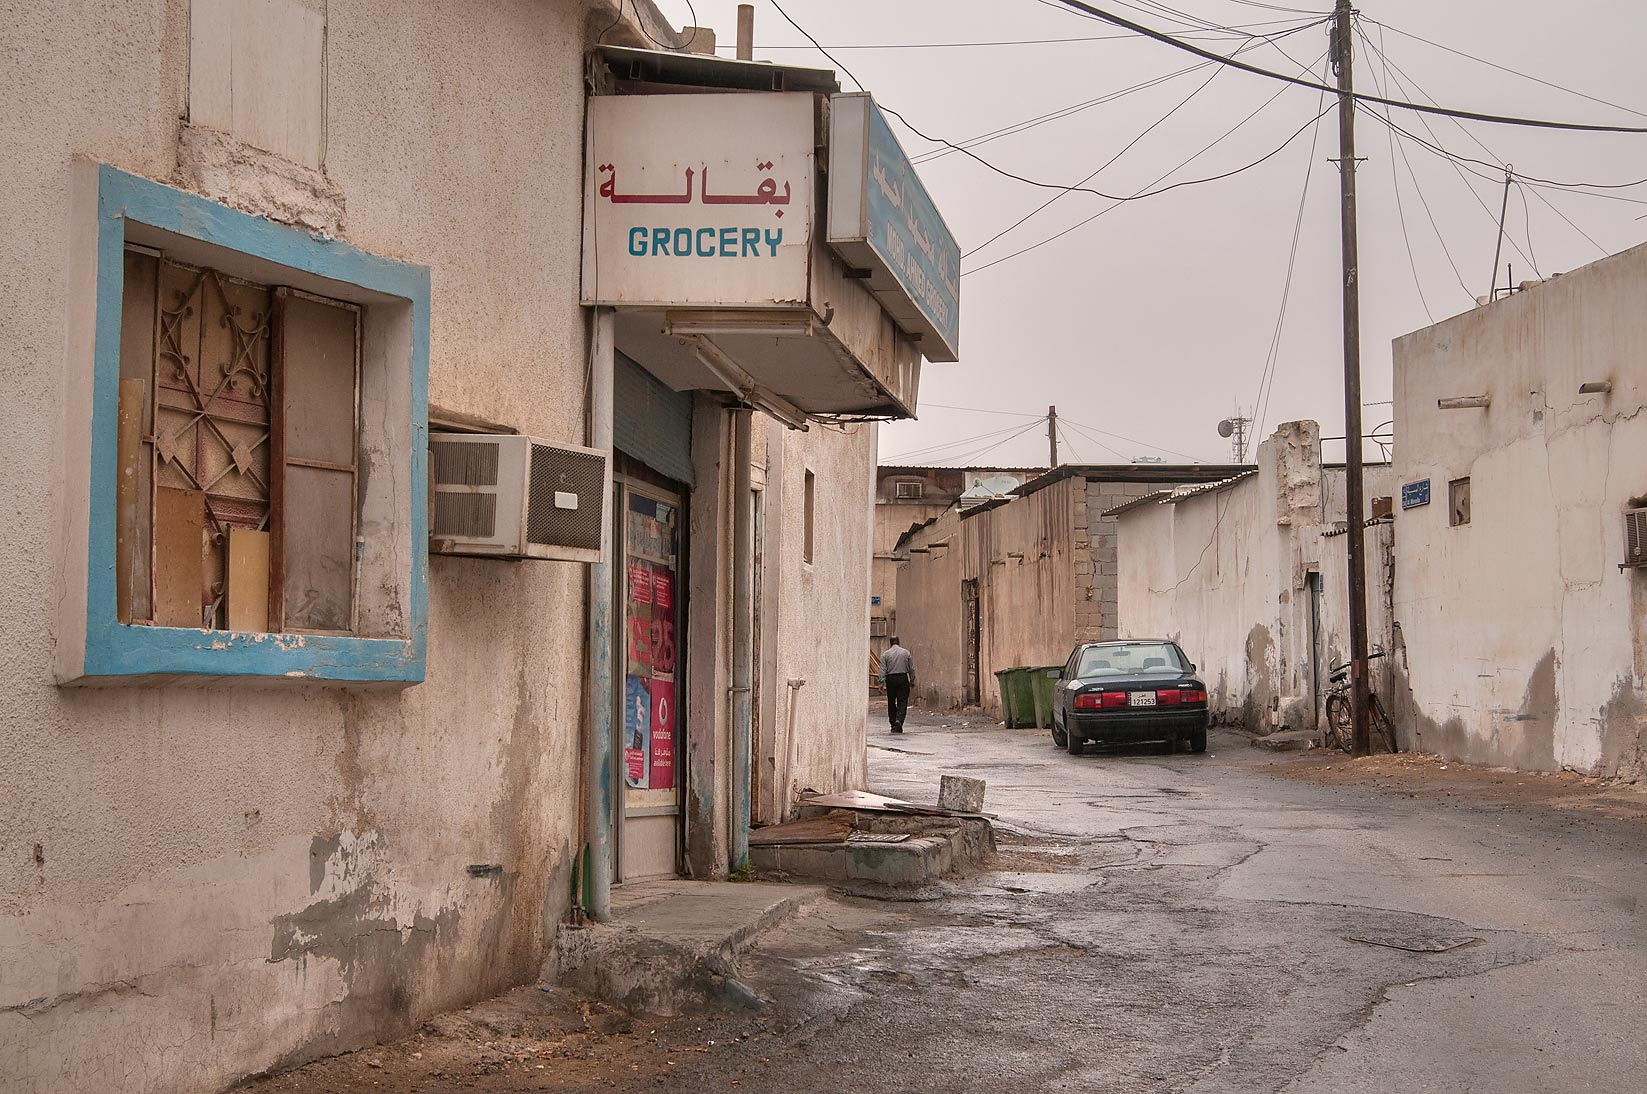 Simple 'Grocery' at Messila St., Musheirib area. Doha, Qatar